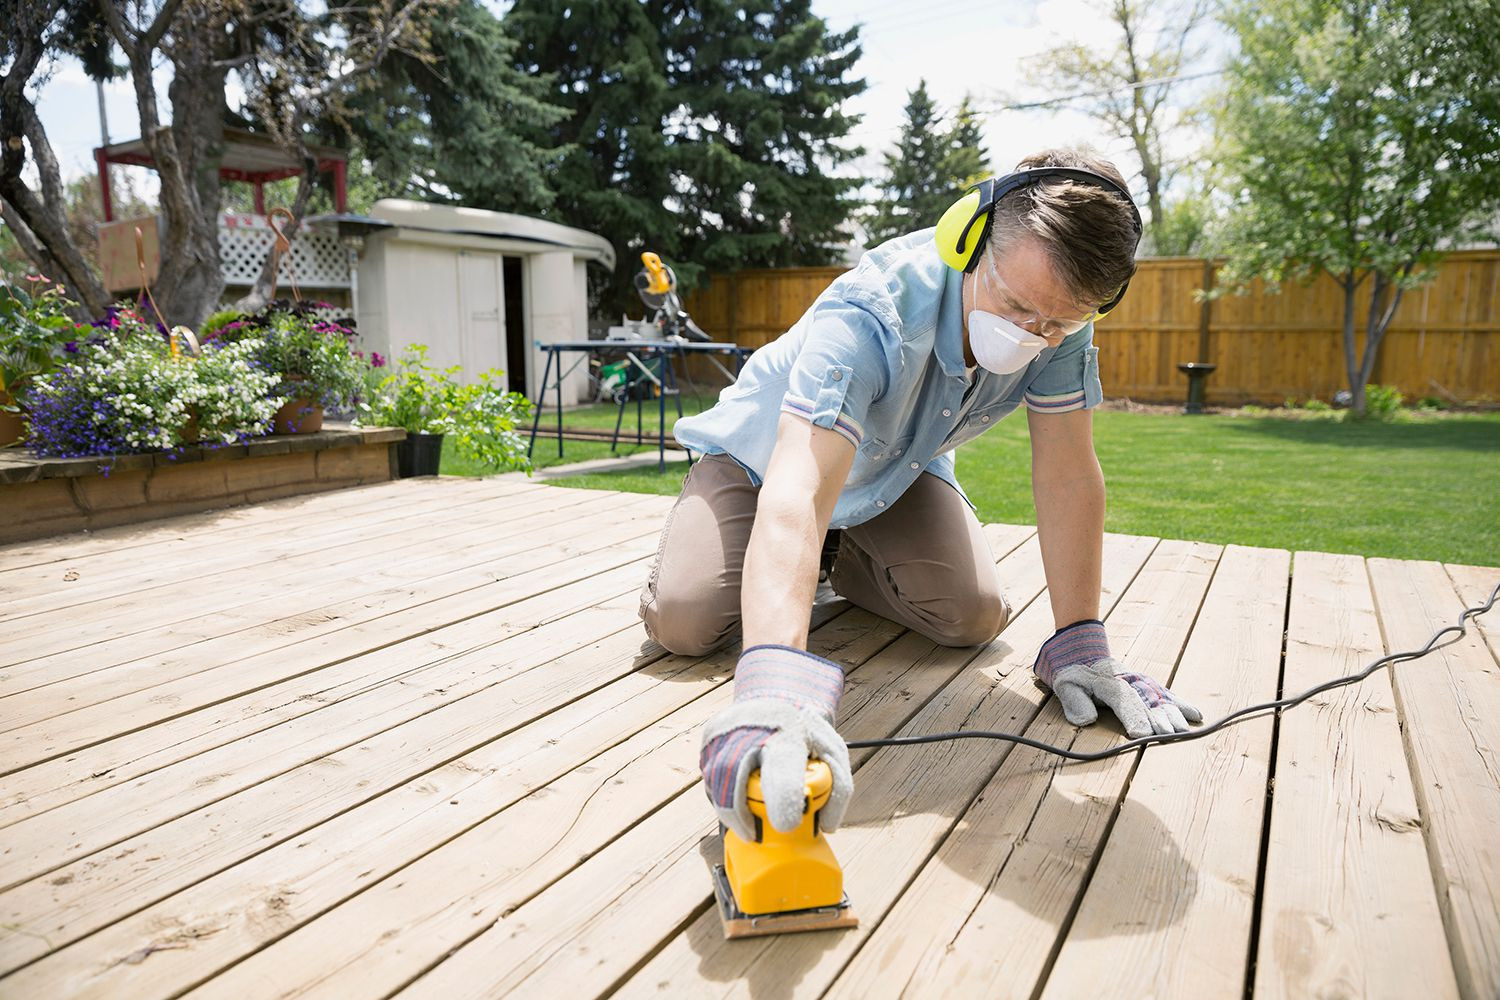 hardwood floor refinishing rental equipment of tips for properly sanding a wood deck after washing pertaining to gettyimages 500817135 5a6519907bb283003730b5bb